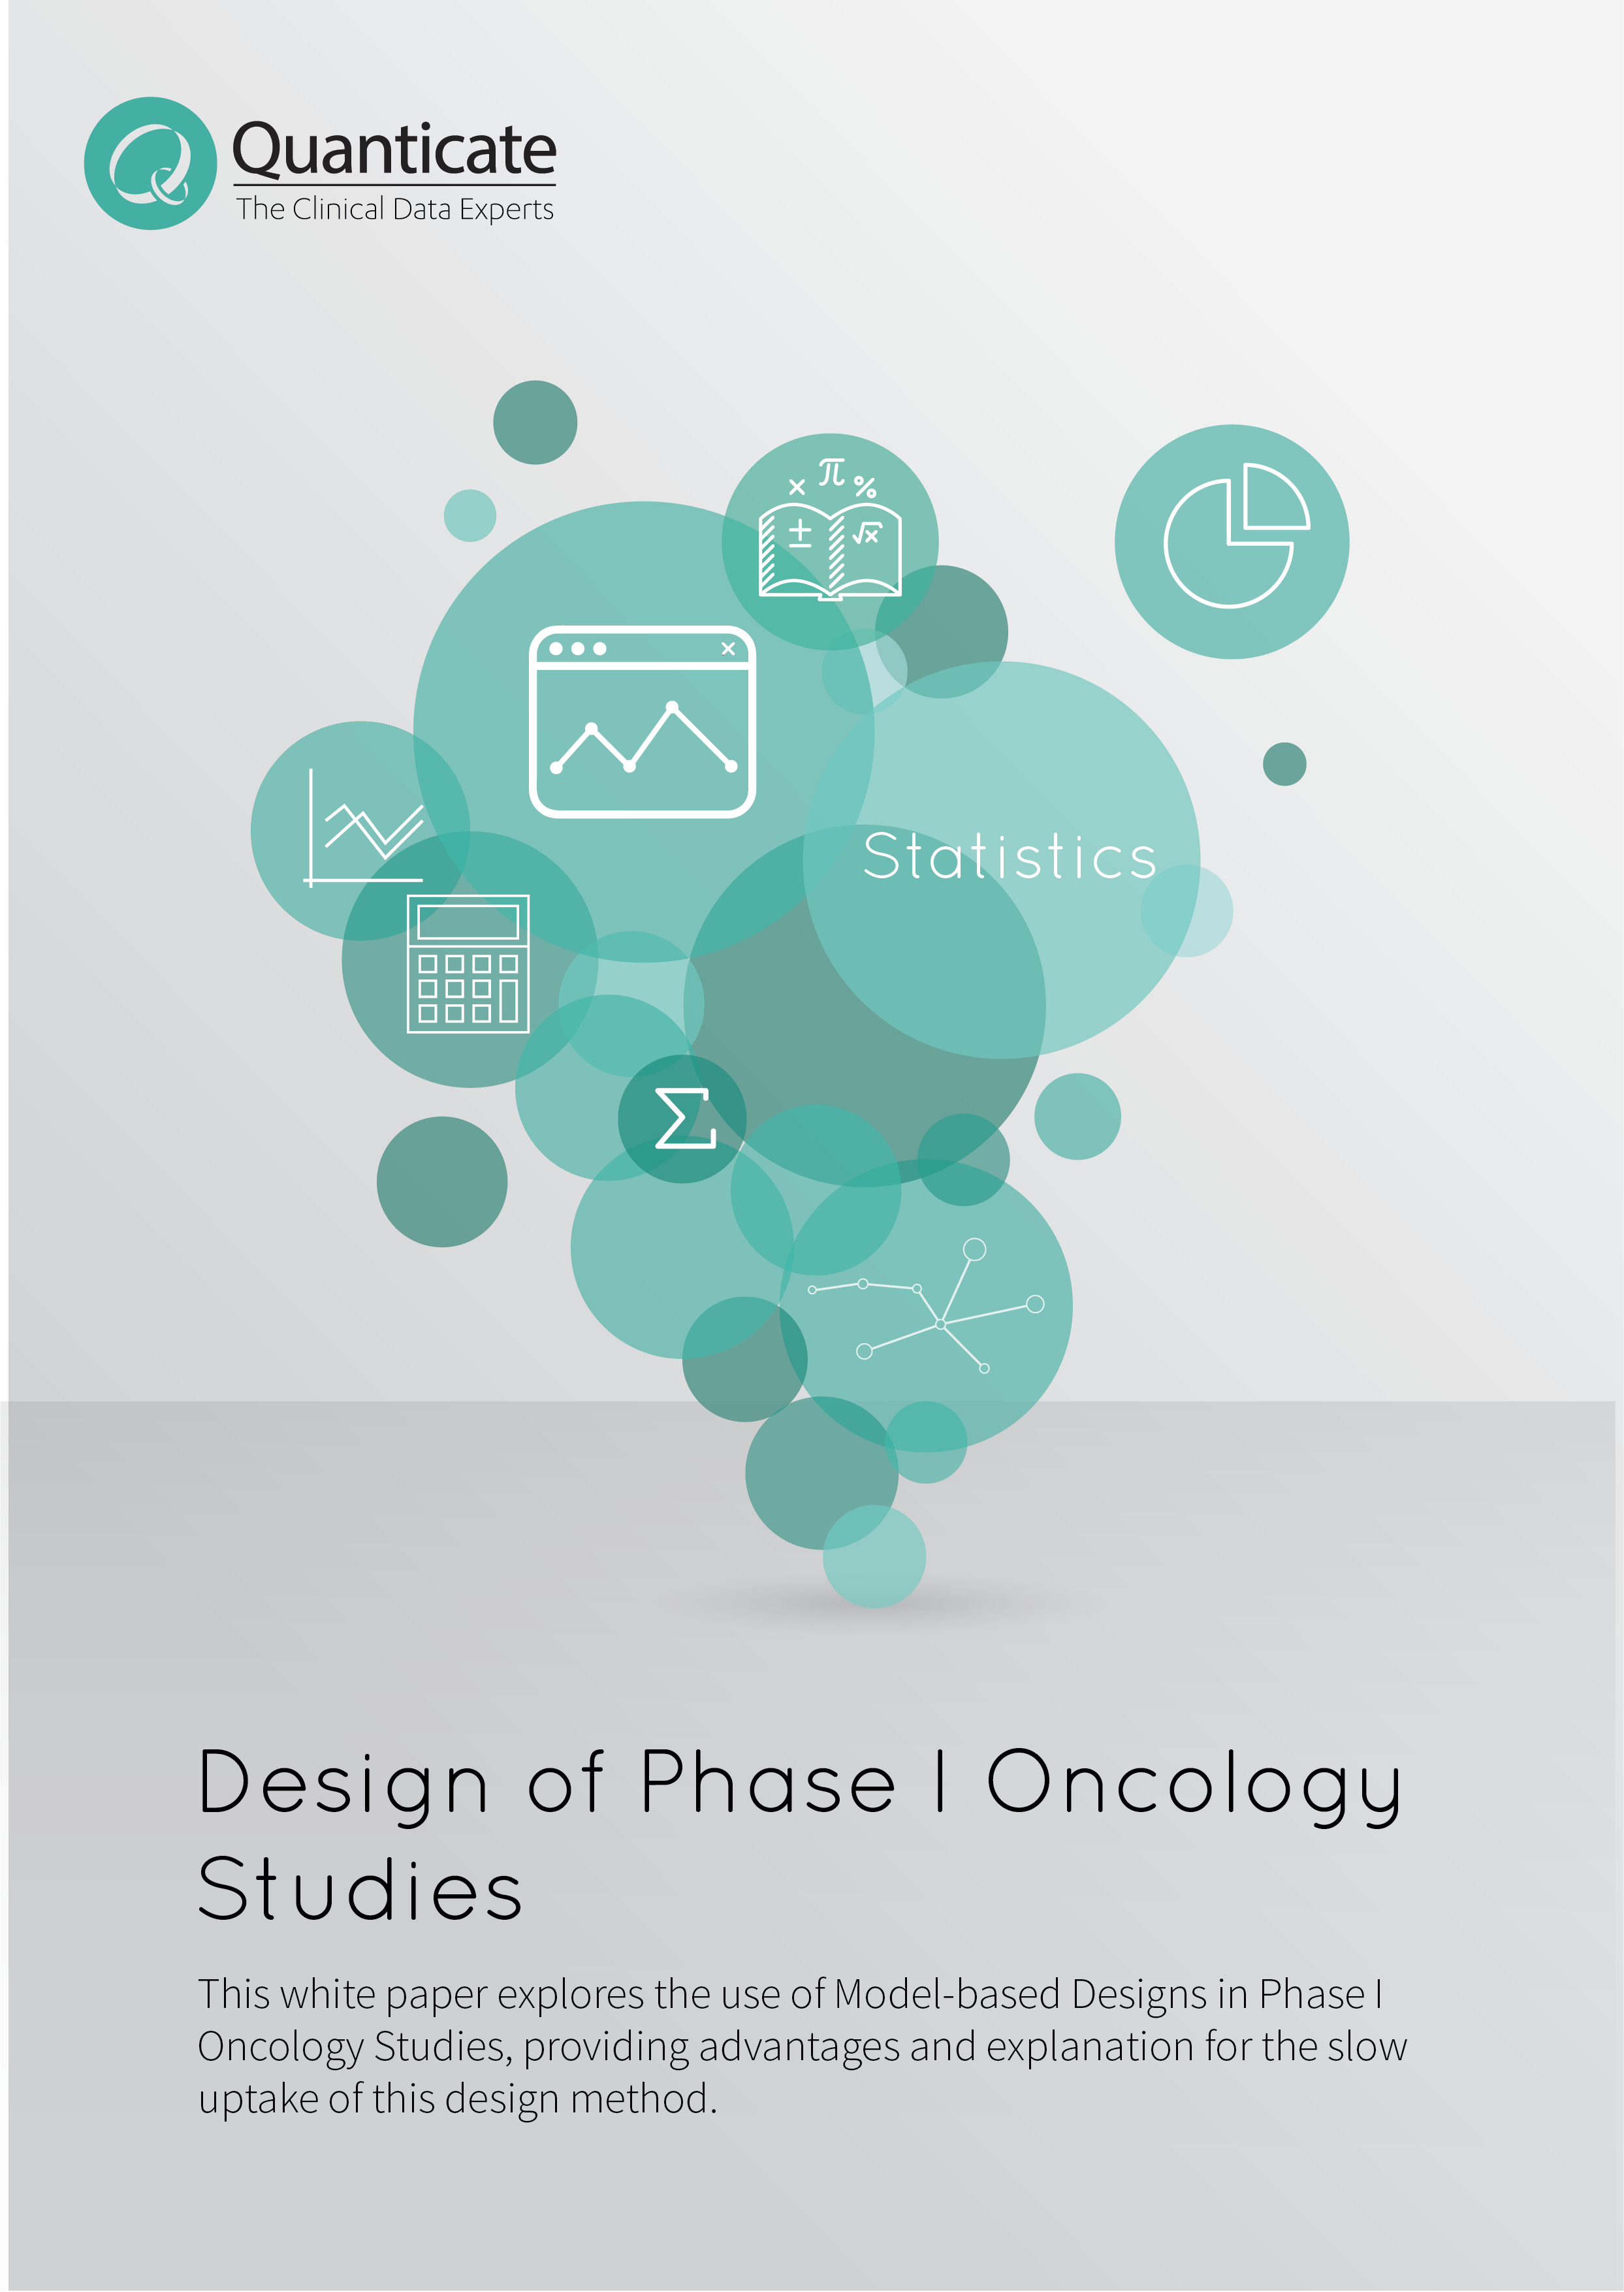 Design of Phase 1 Oncology Studies